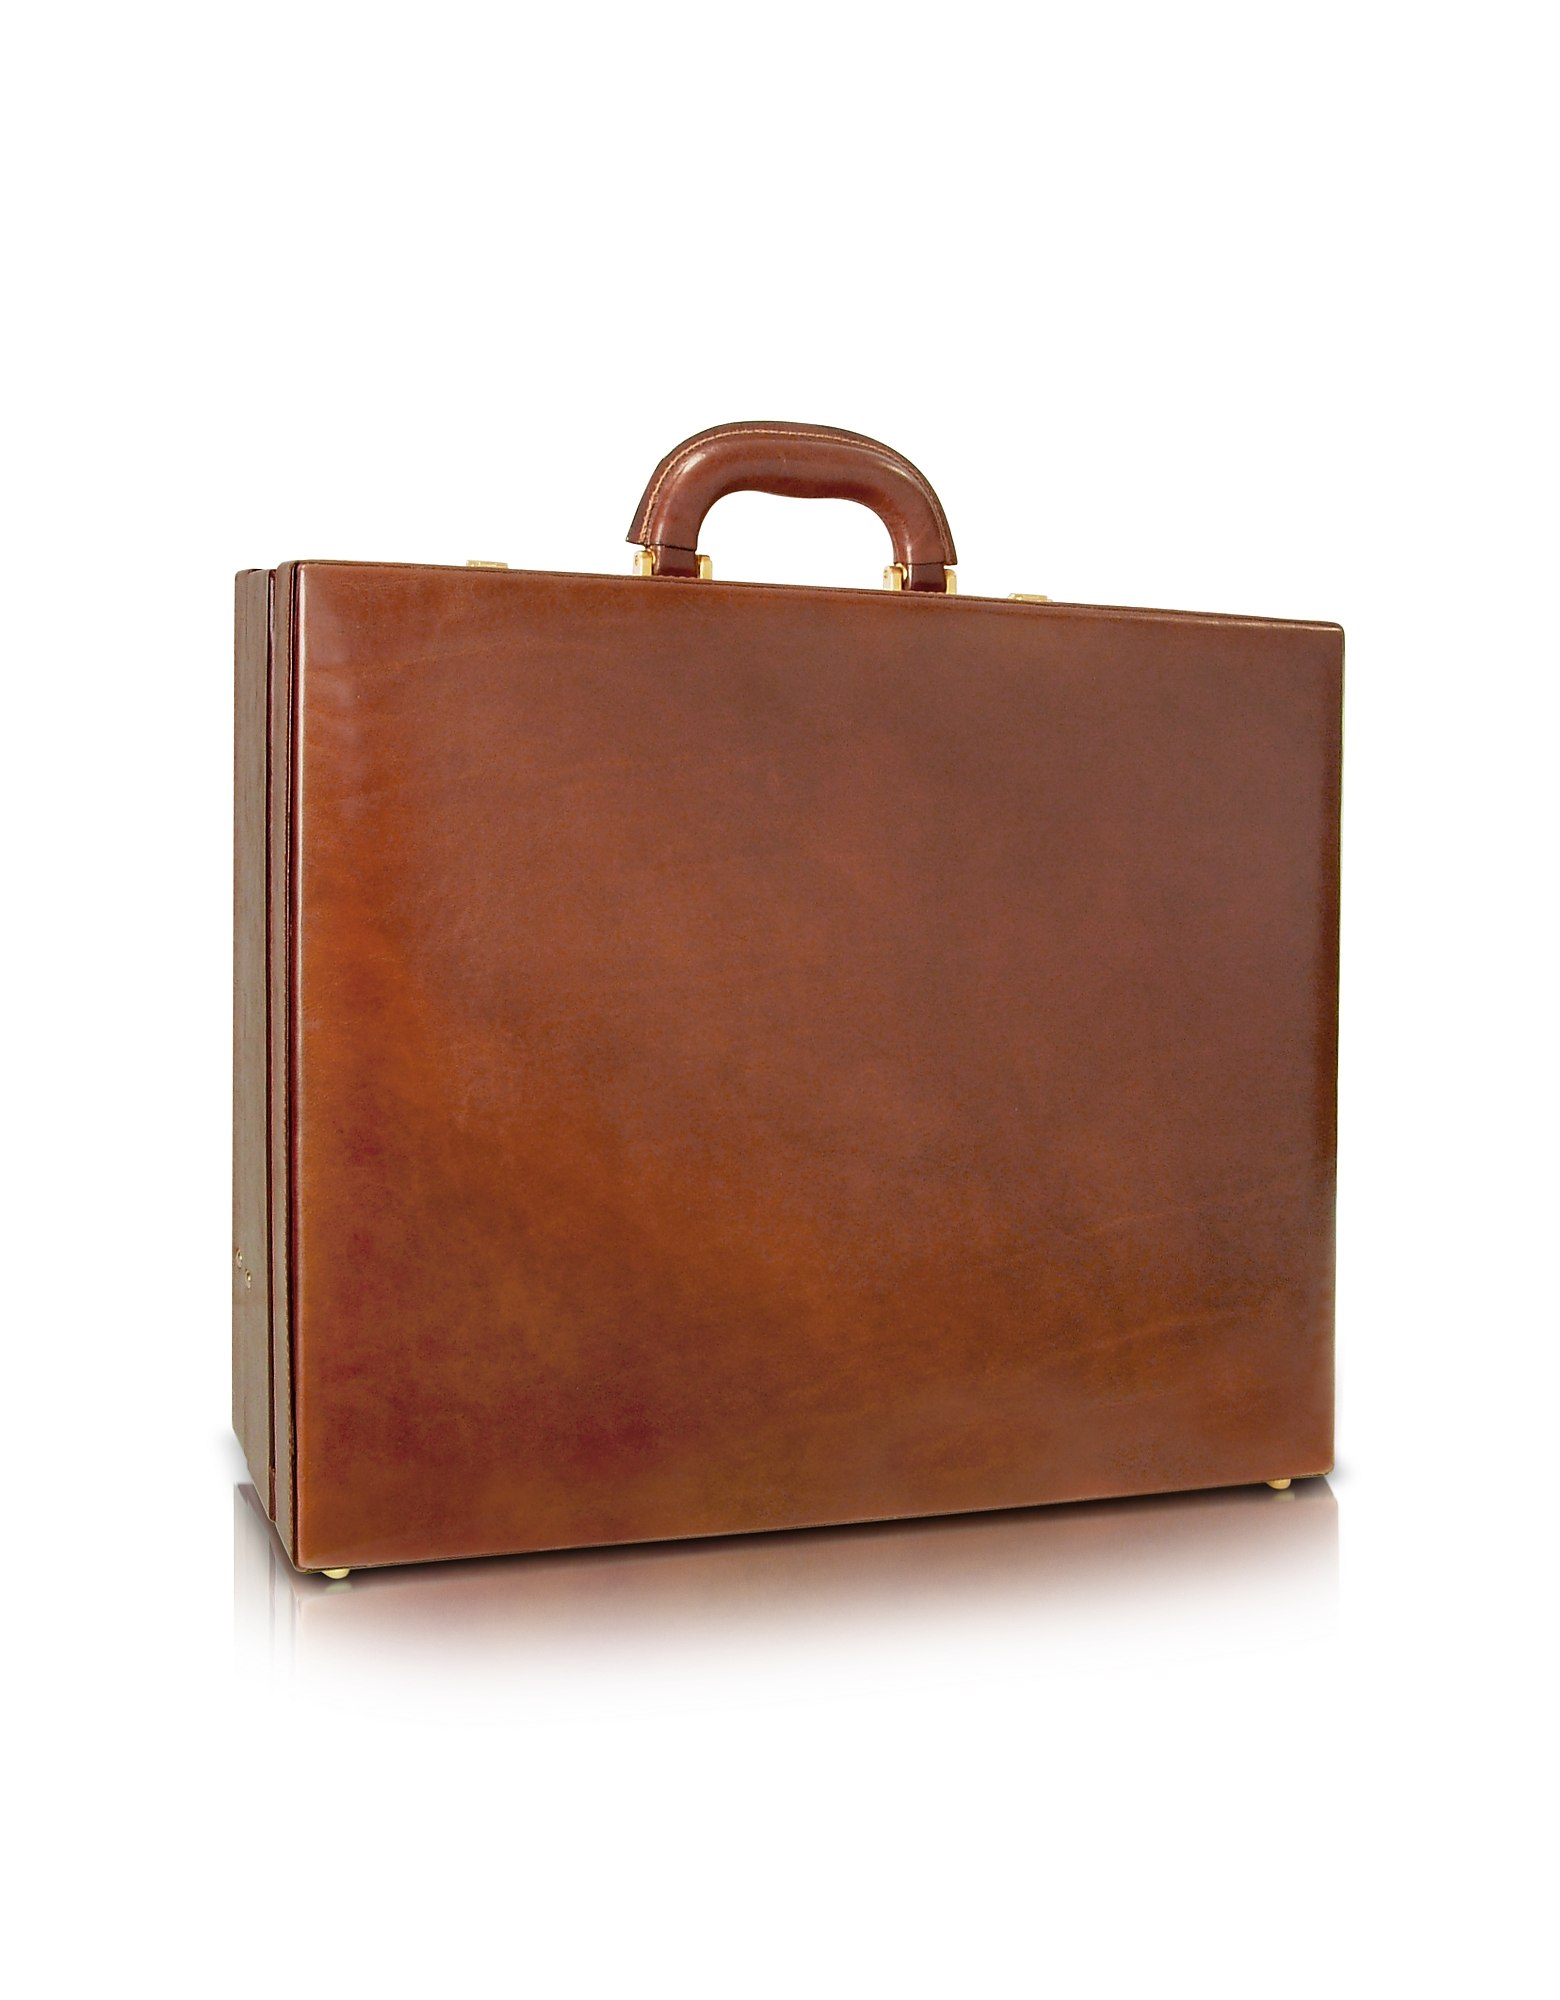 Chiarugi Men's Handmade Brown Leather Attache Briefcase